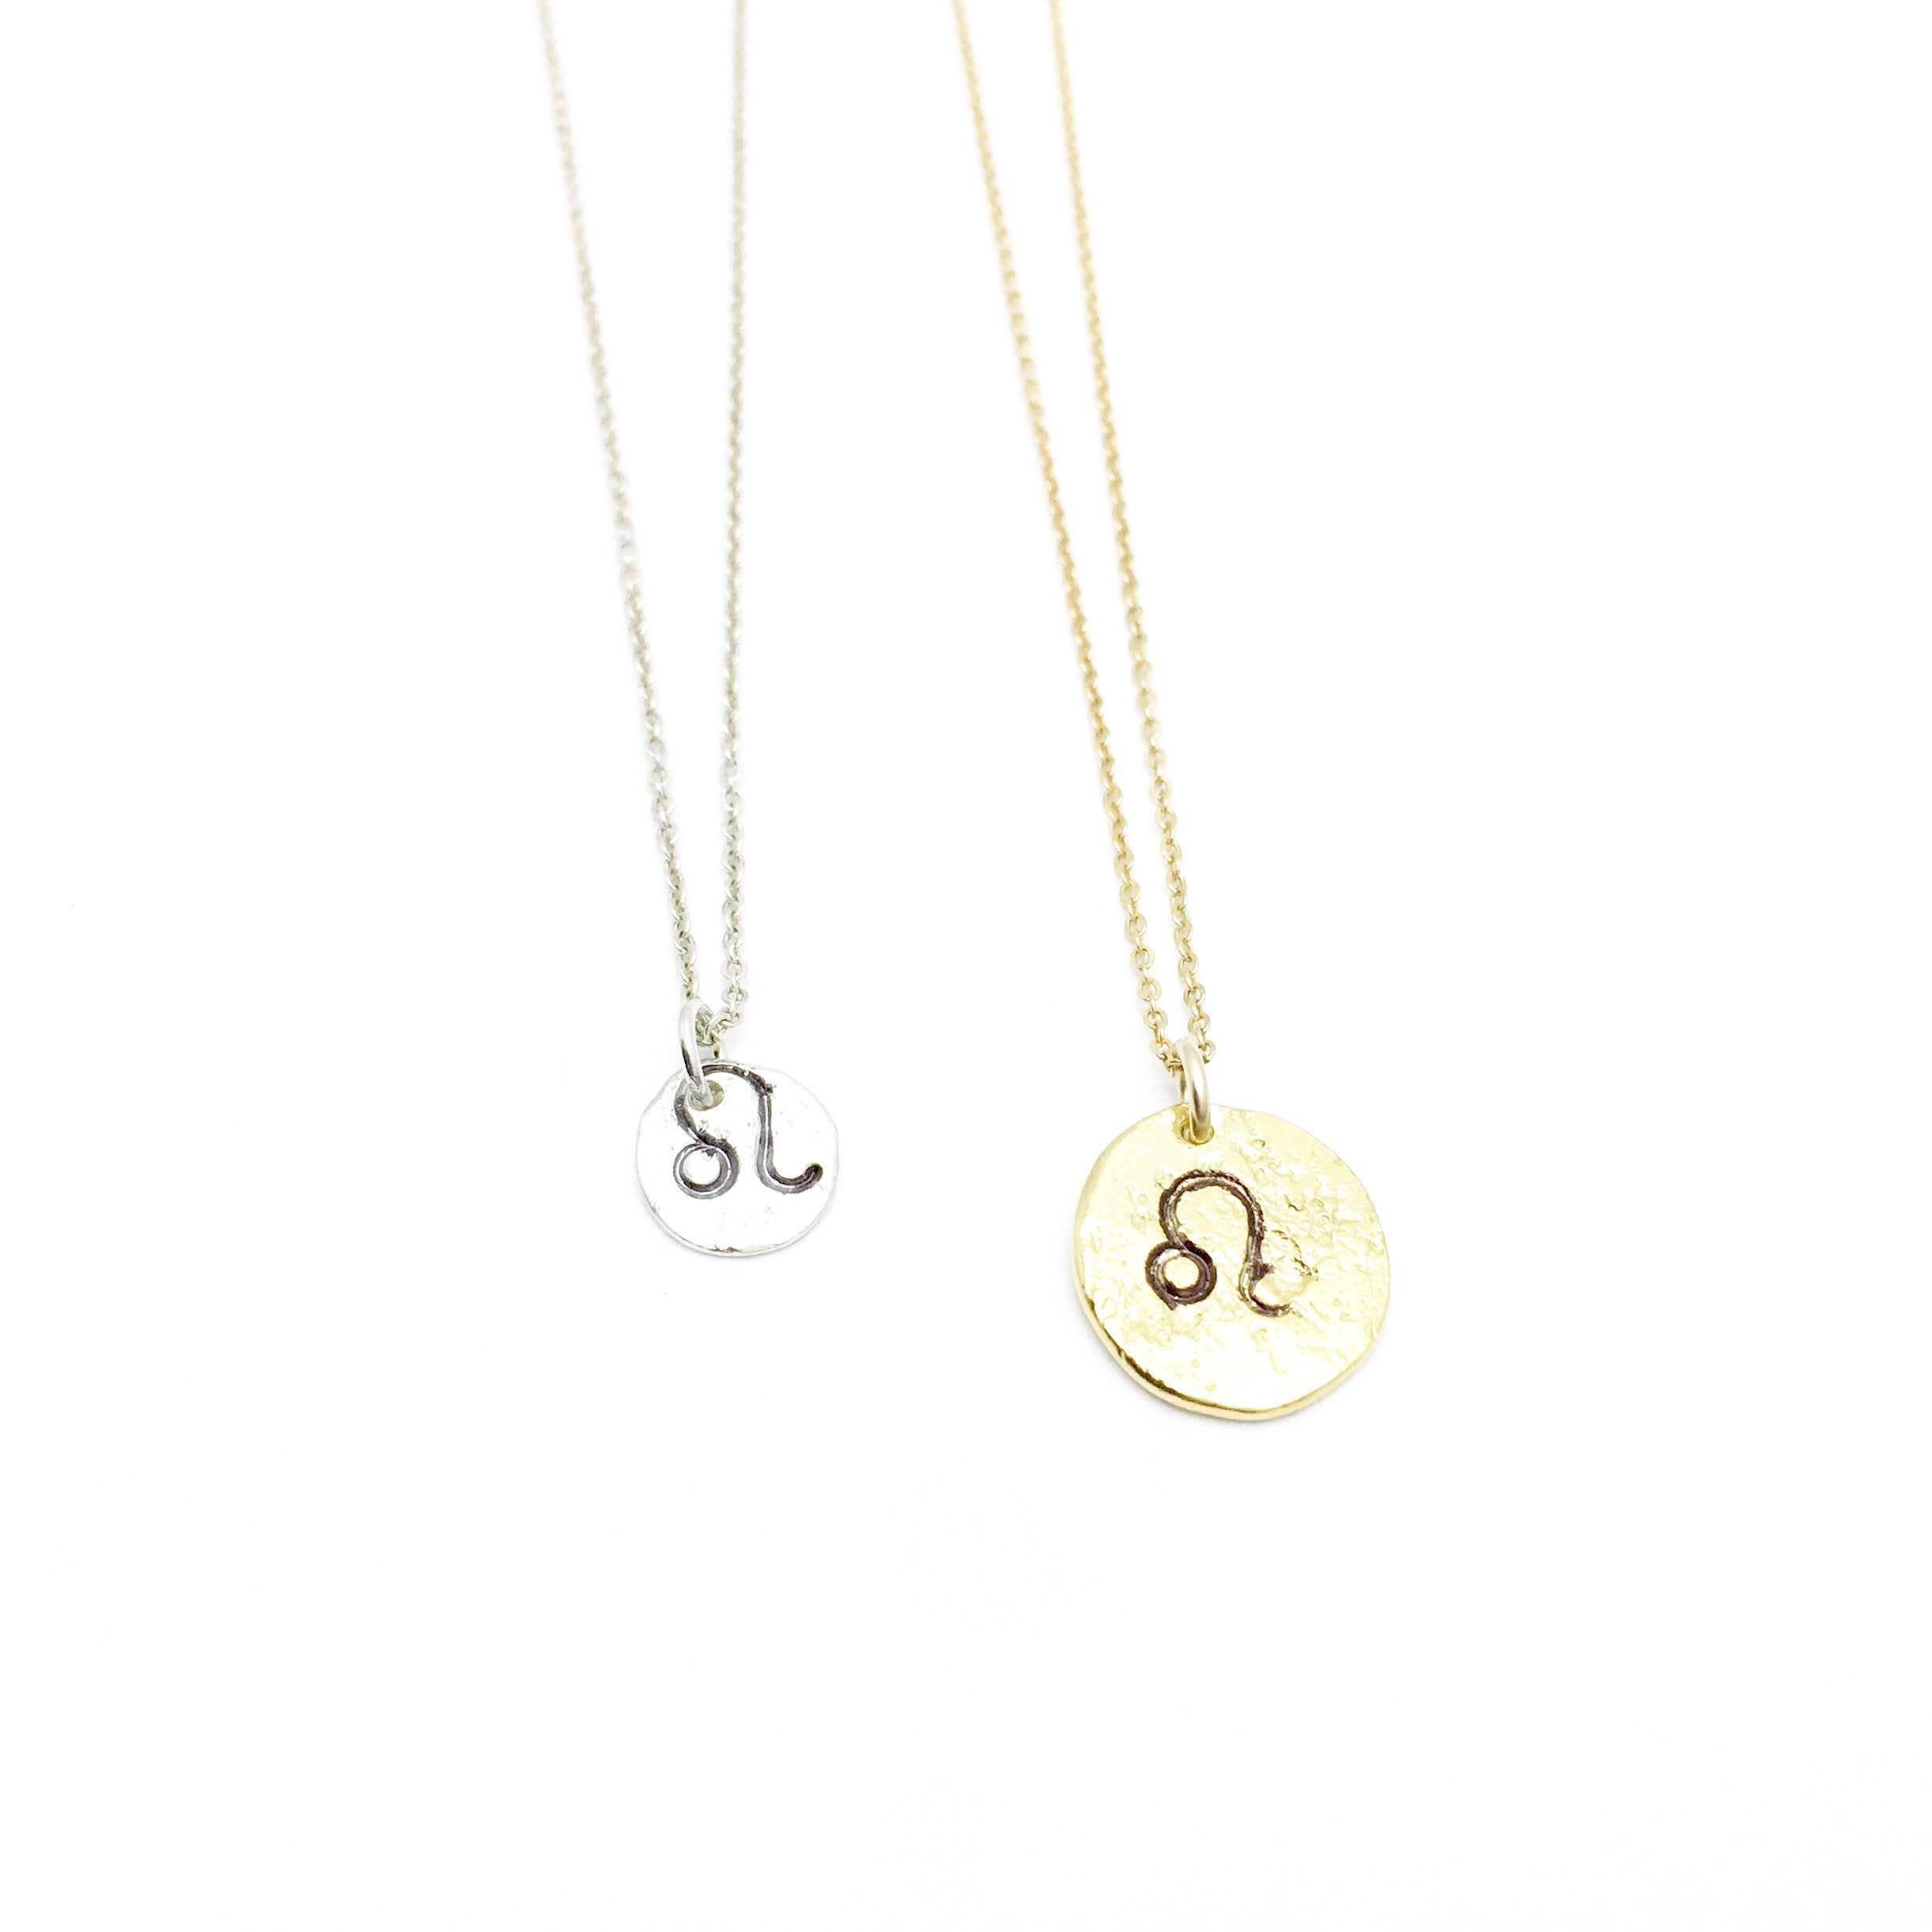 SIGNS Necklace